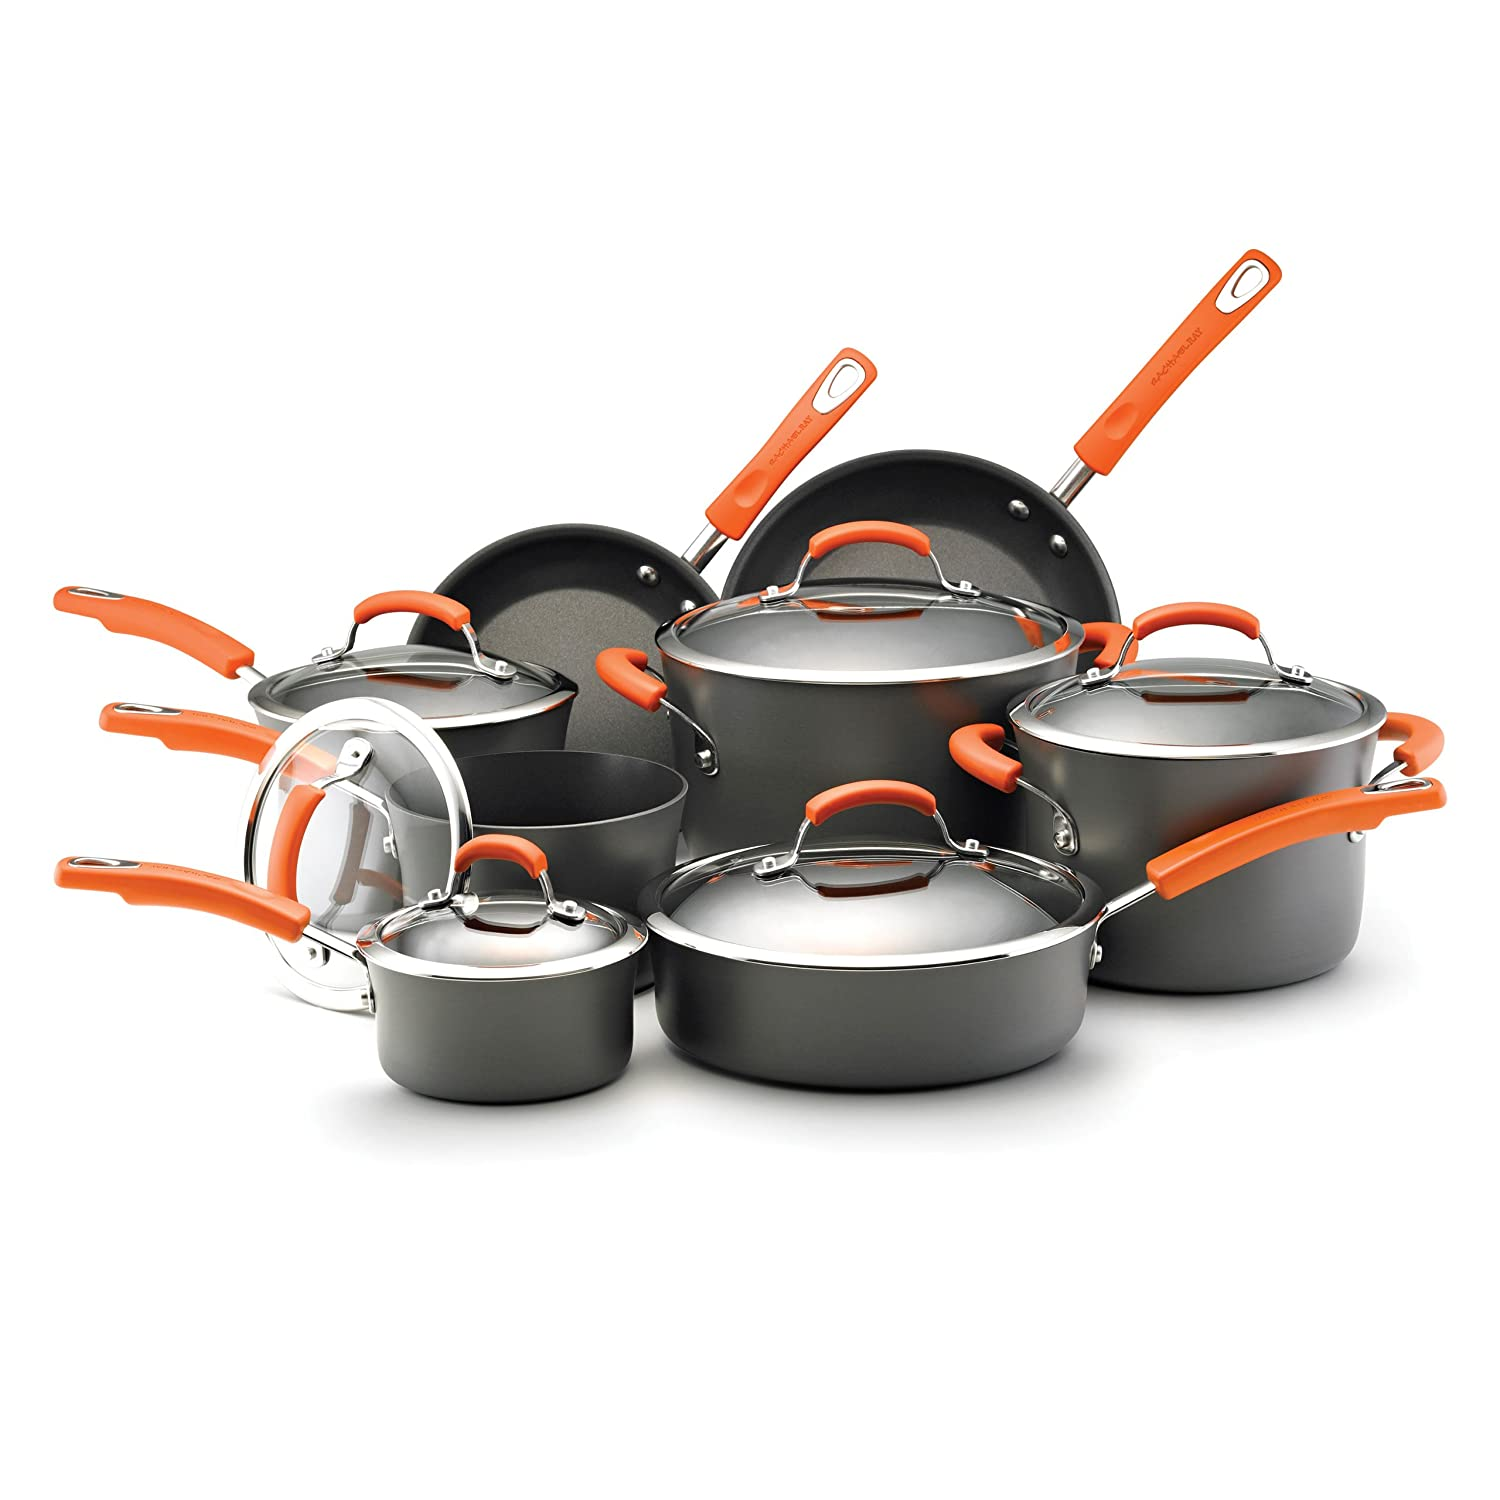 Hard Anodized Cookware Vs Non Stick Cookware What Is The